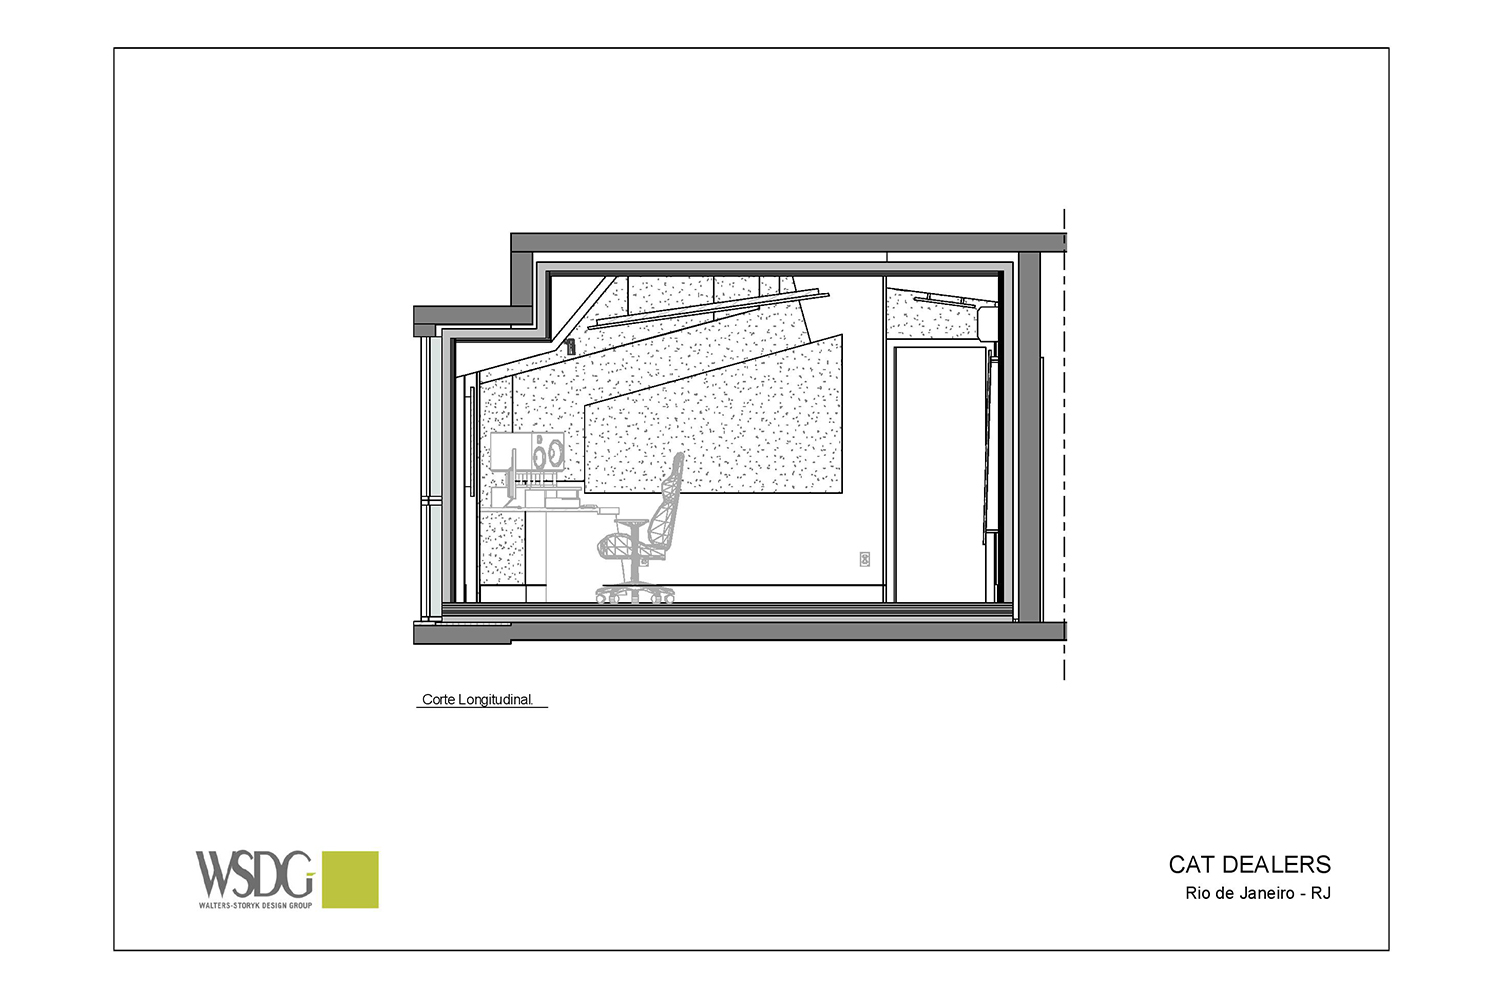 Recognizing the value of superior studio design / acoustic excellence, Hit recording duo Cat Dealers commissioned WSDG to create a compact yet powerful dream recording studio. Best Project Studio Design. Presentation Drawing 2.